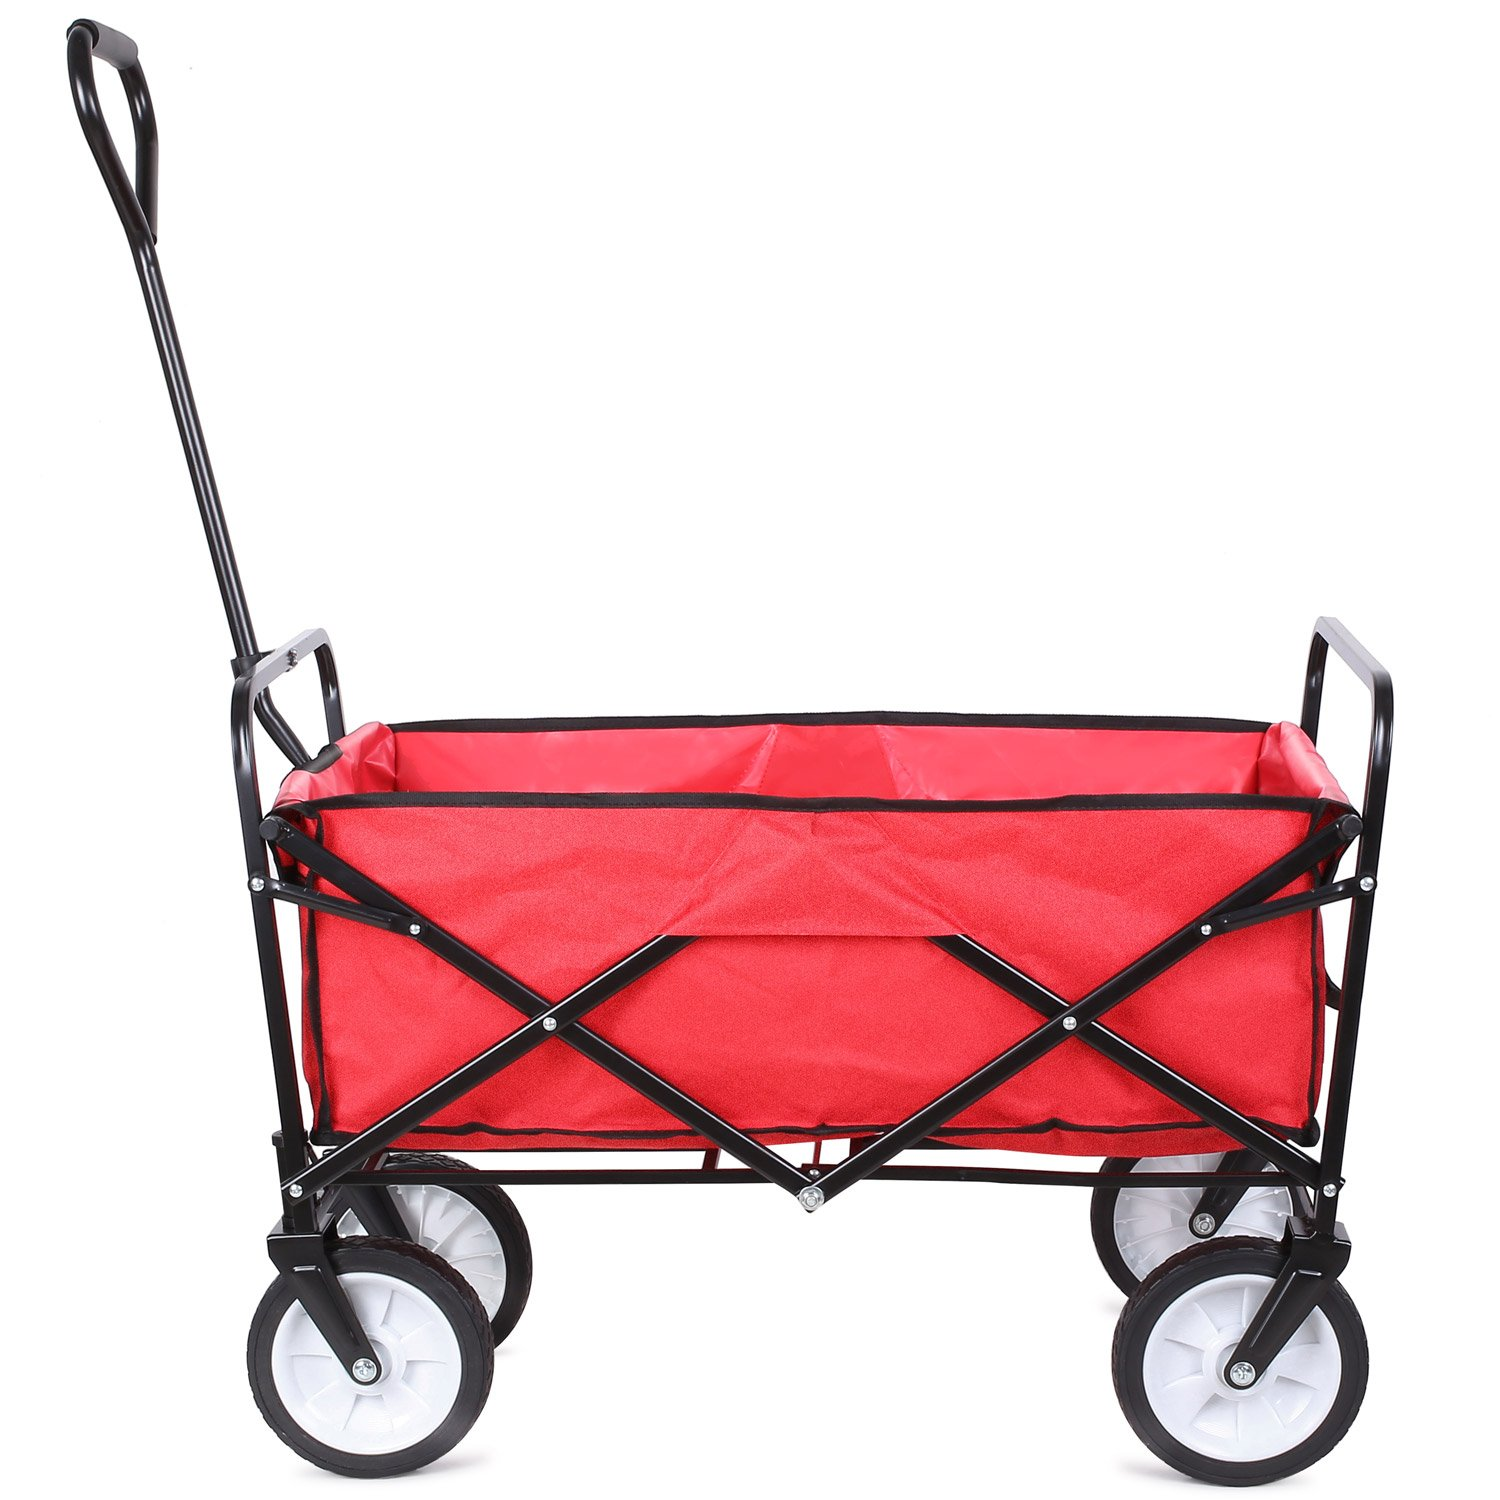 FIXKIT Collapsible Outdoor Utility Wagon, Folding Sturdy Garden Shopping Cart Beach All-Terrain Wheels, Red